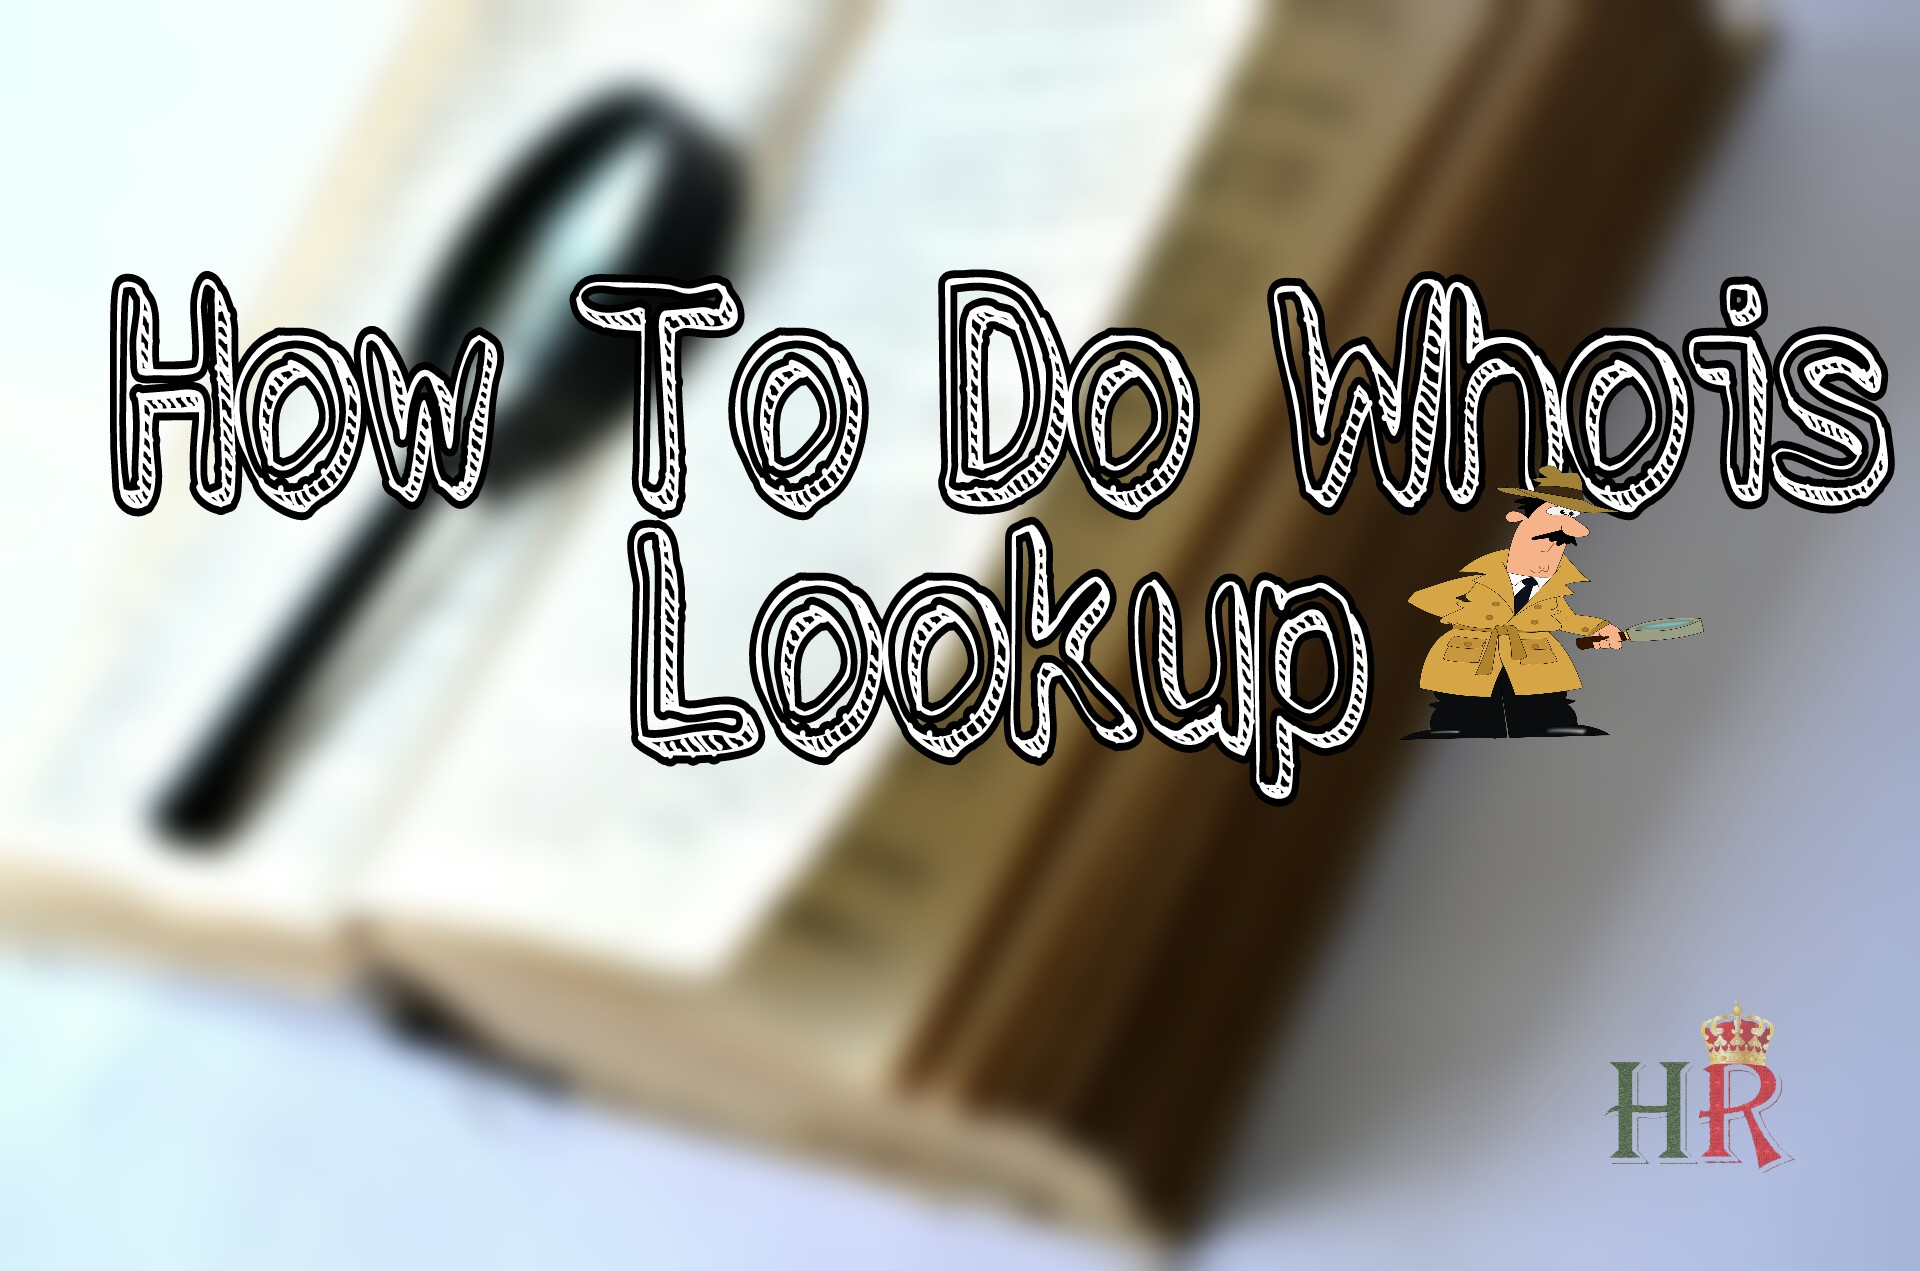 How to do a whois lookup: Step-by-step Guide